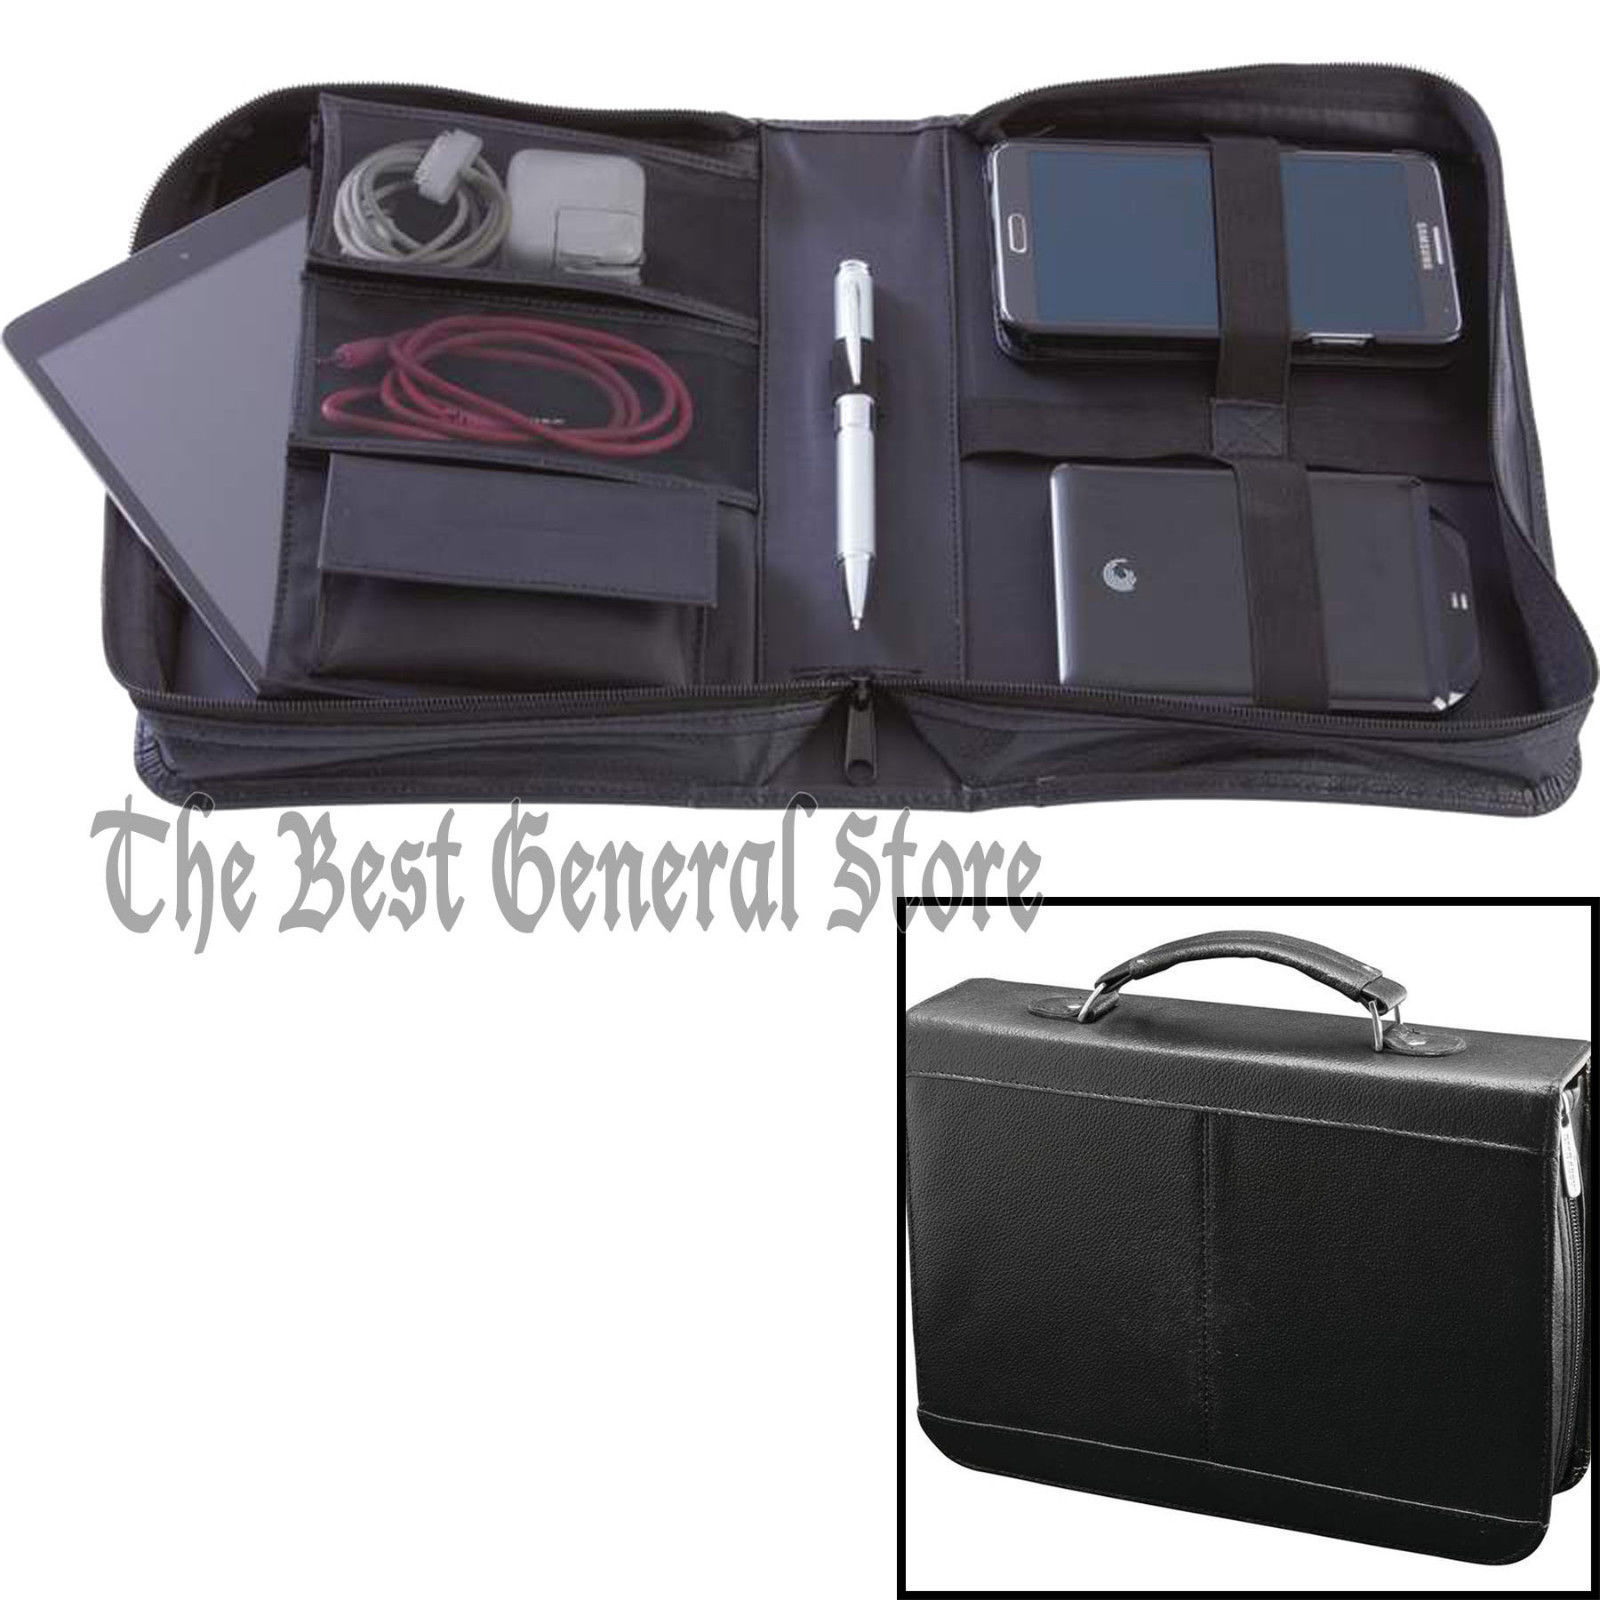 Black Cowhide Leather Electronics Travel Case with Interior Pockets and Handle